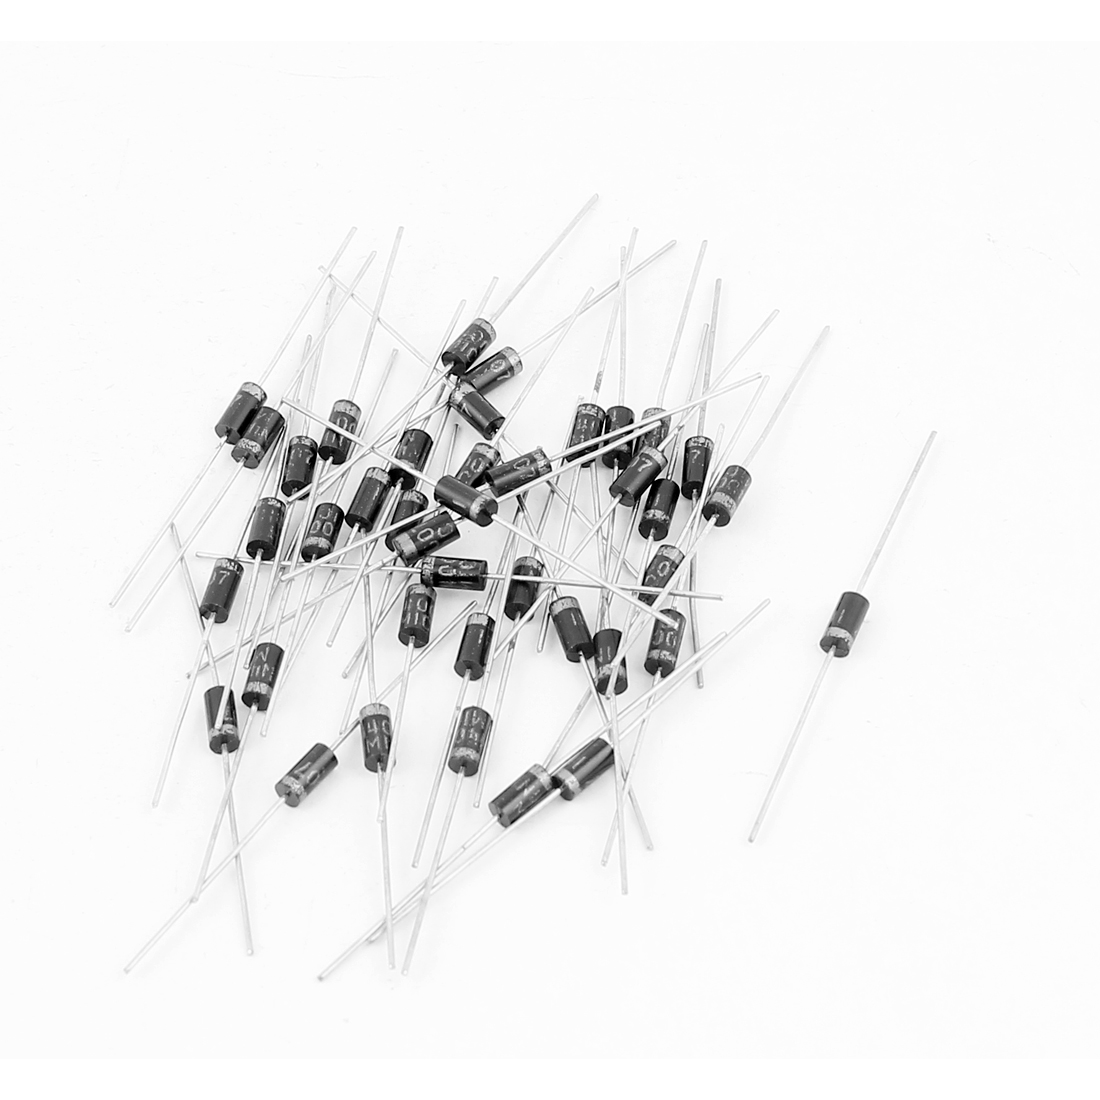 1A 1000V IN4007 Cylindrical Axial Leaded Rectifier Schottky Diodes 40 Pcs